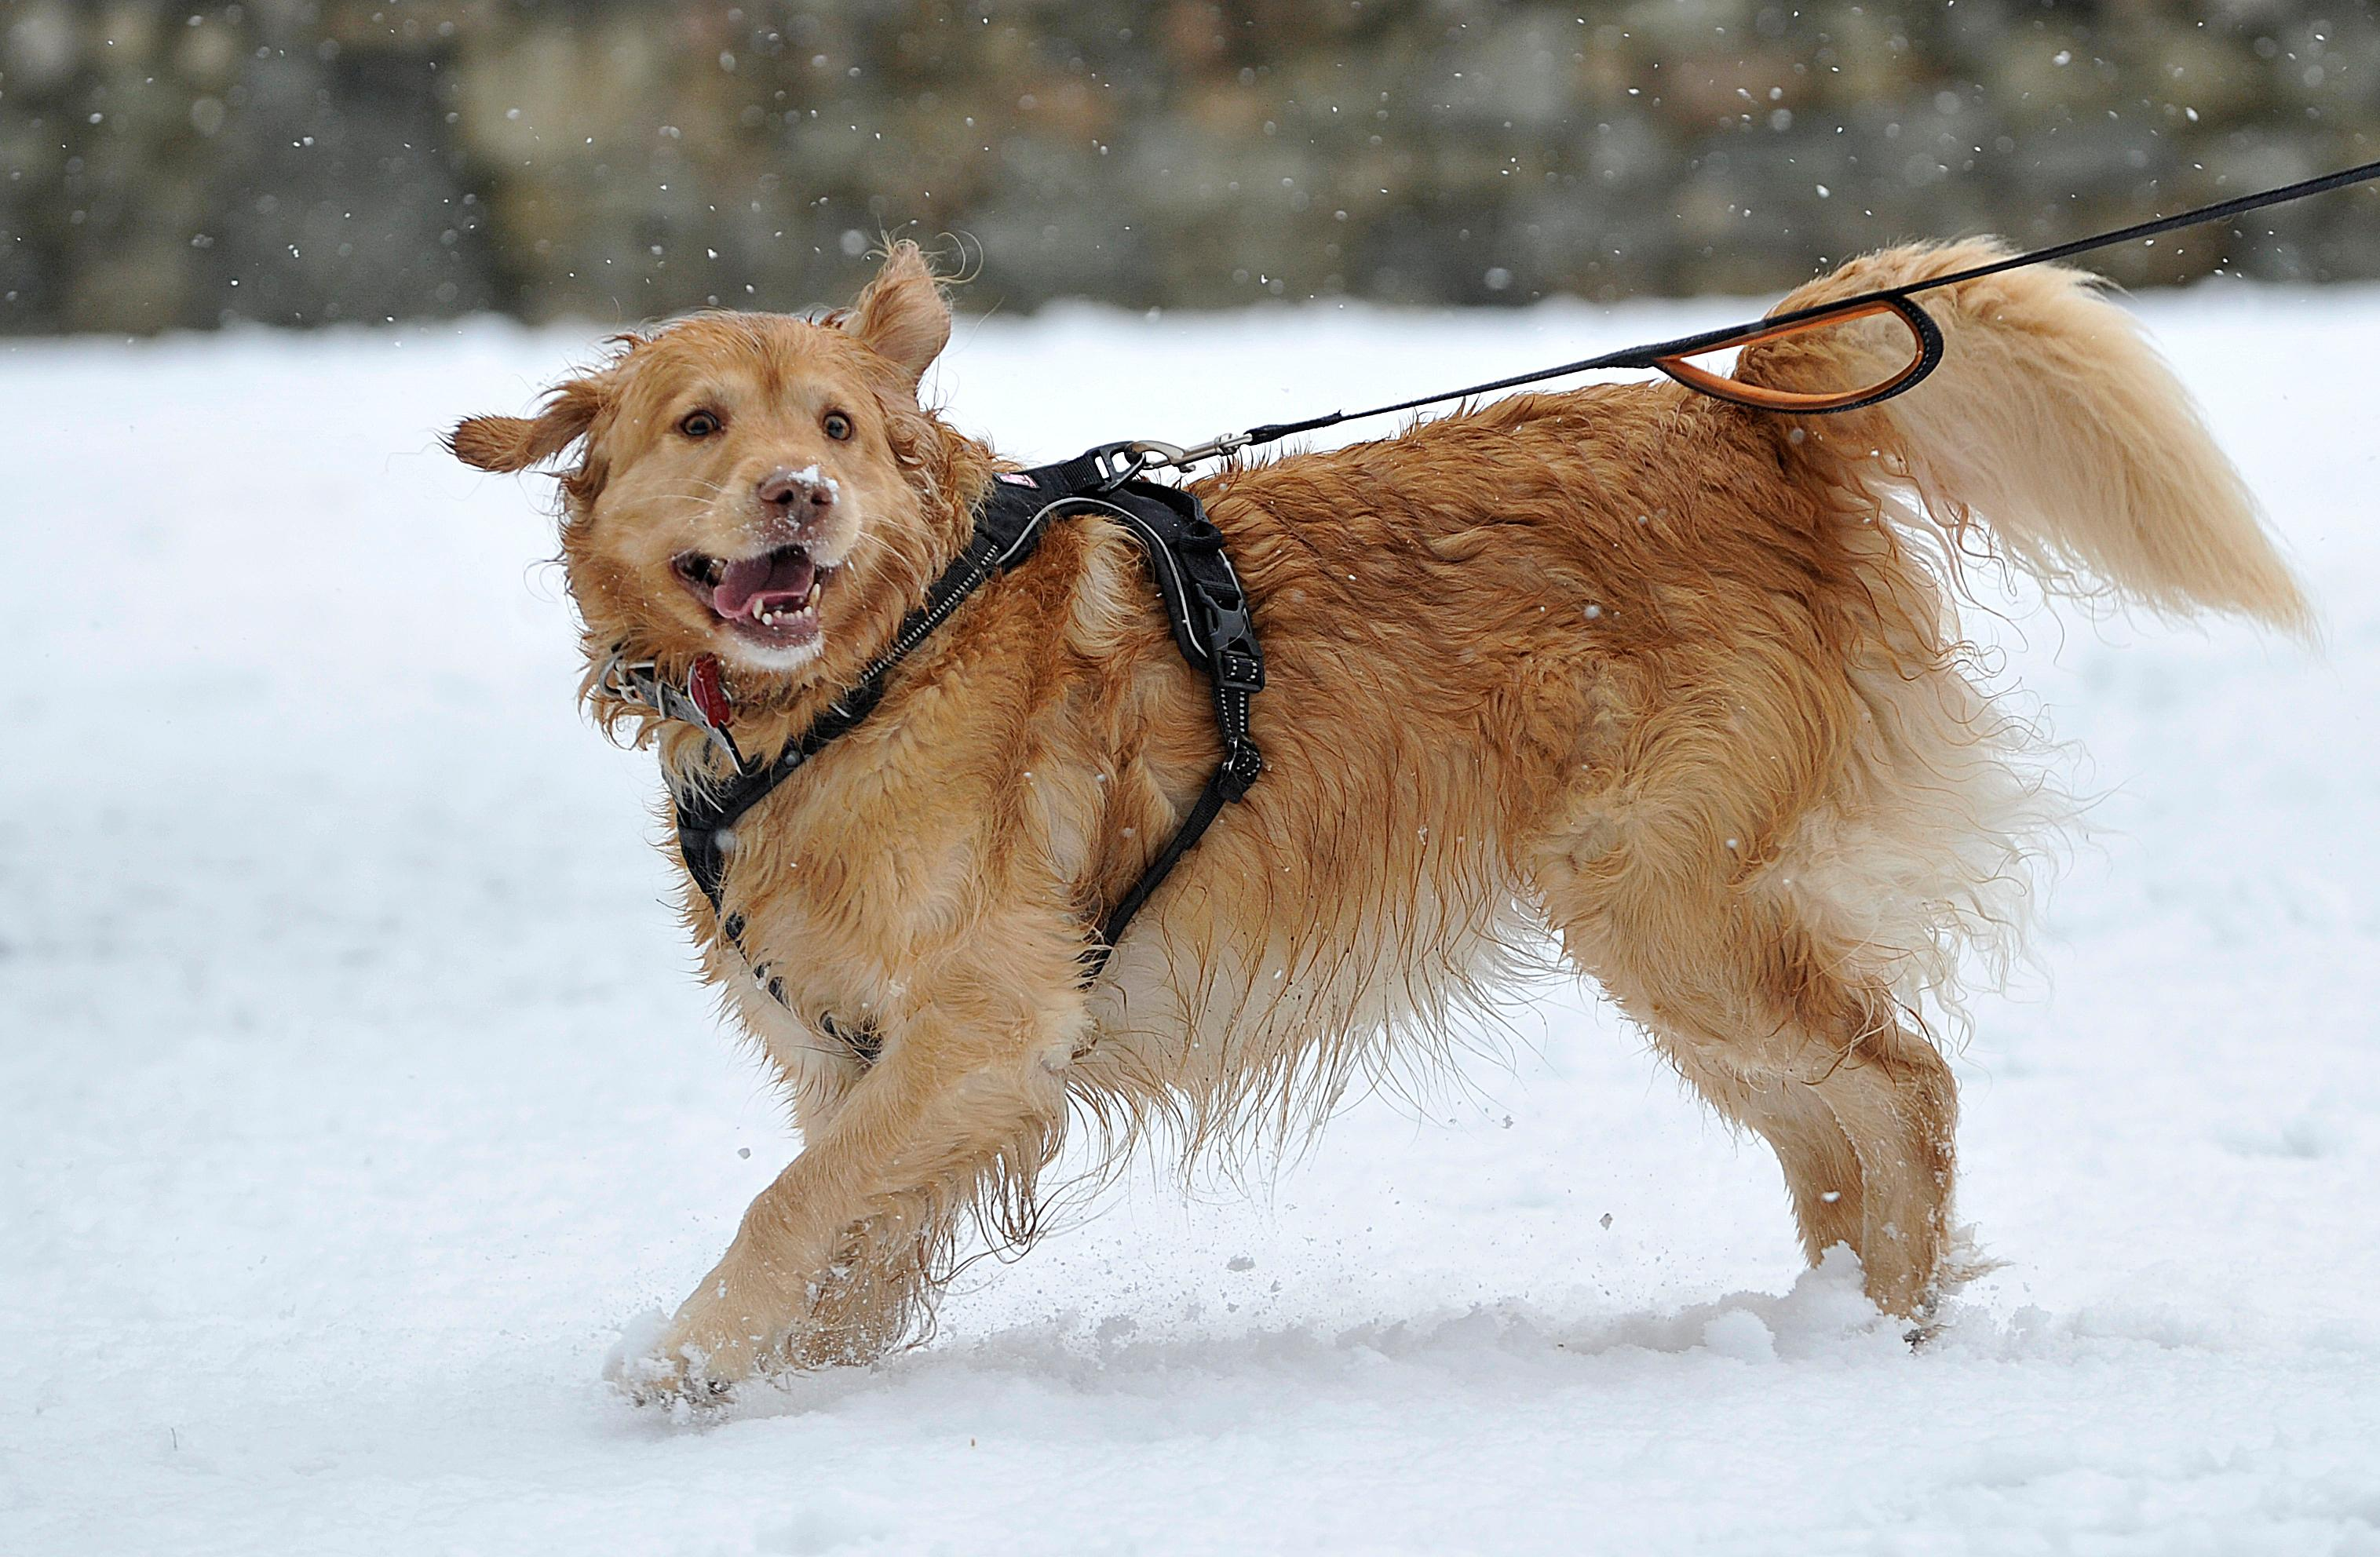 Attie, a golden retriever, takes a walk in the snow at Lithia Park in Ashland. Jamie Lusch / Ashland Tidings